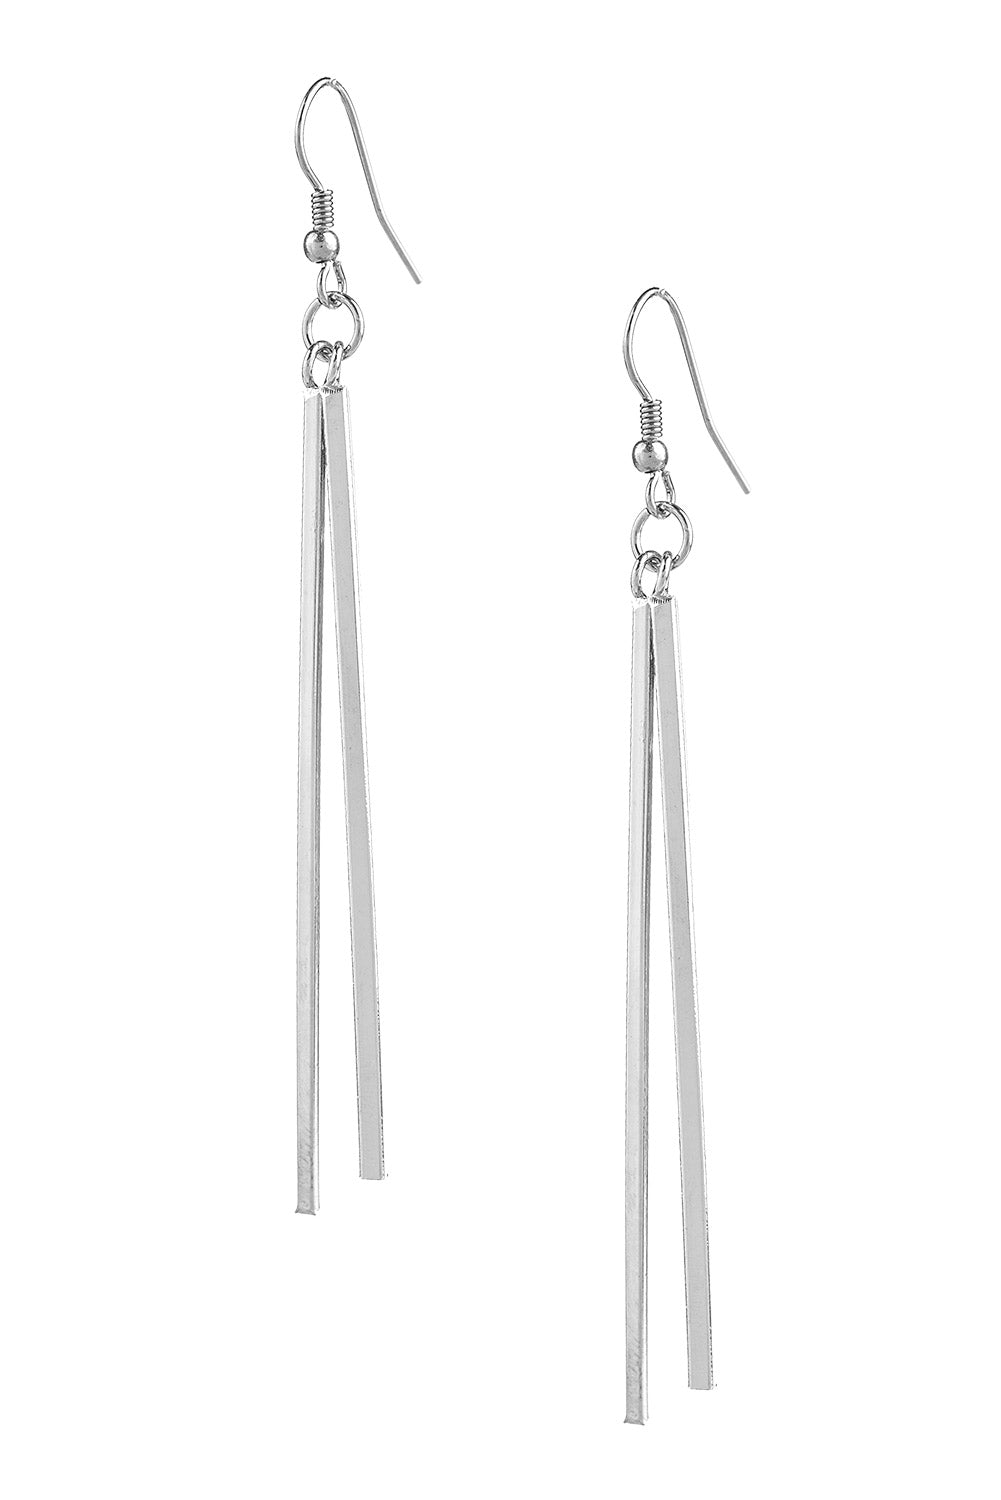 Type 4 Running Parallel Earrings